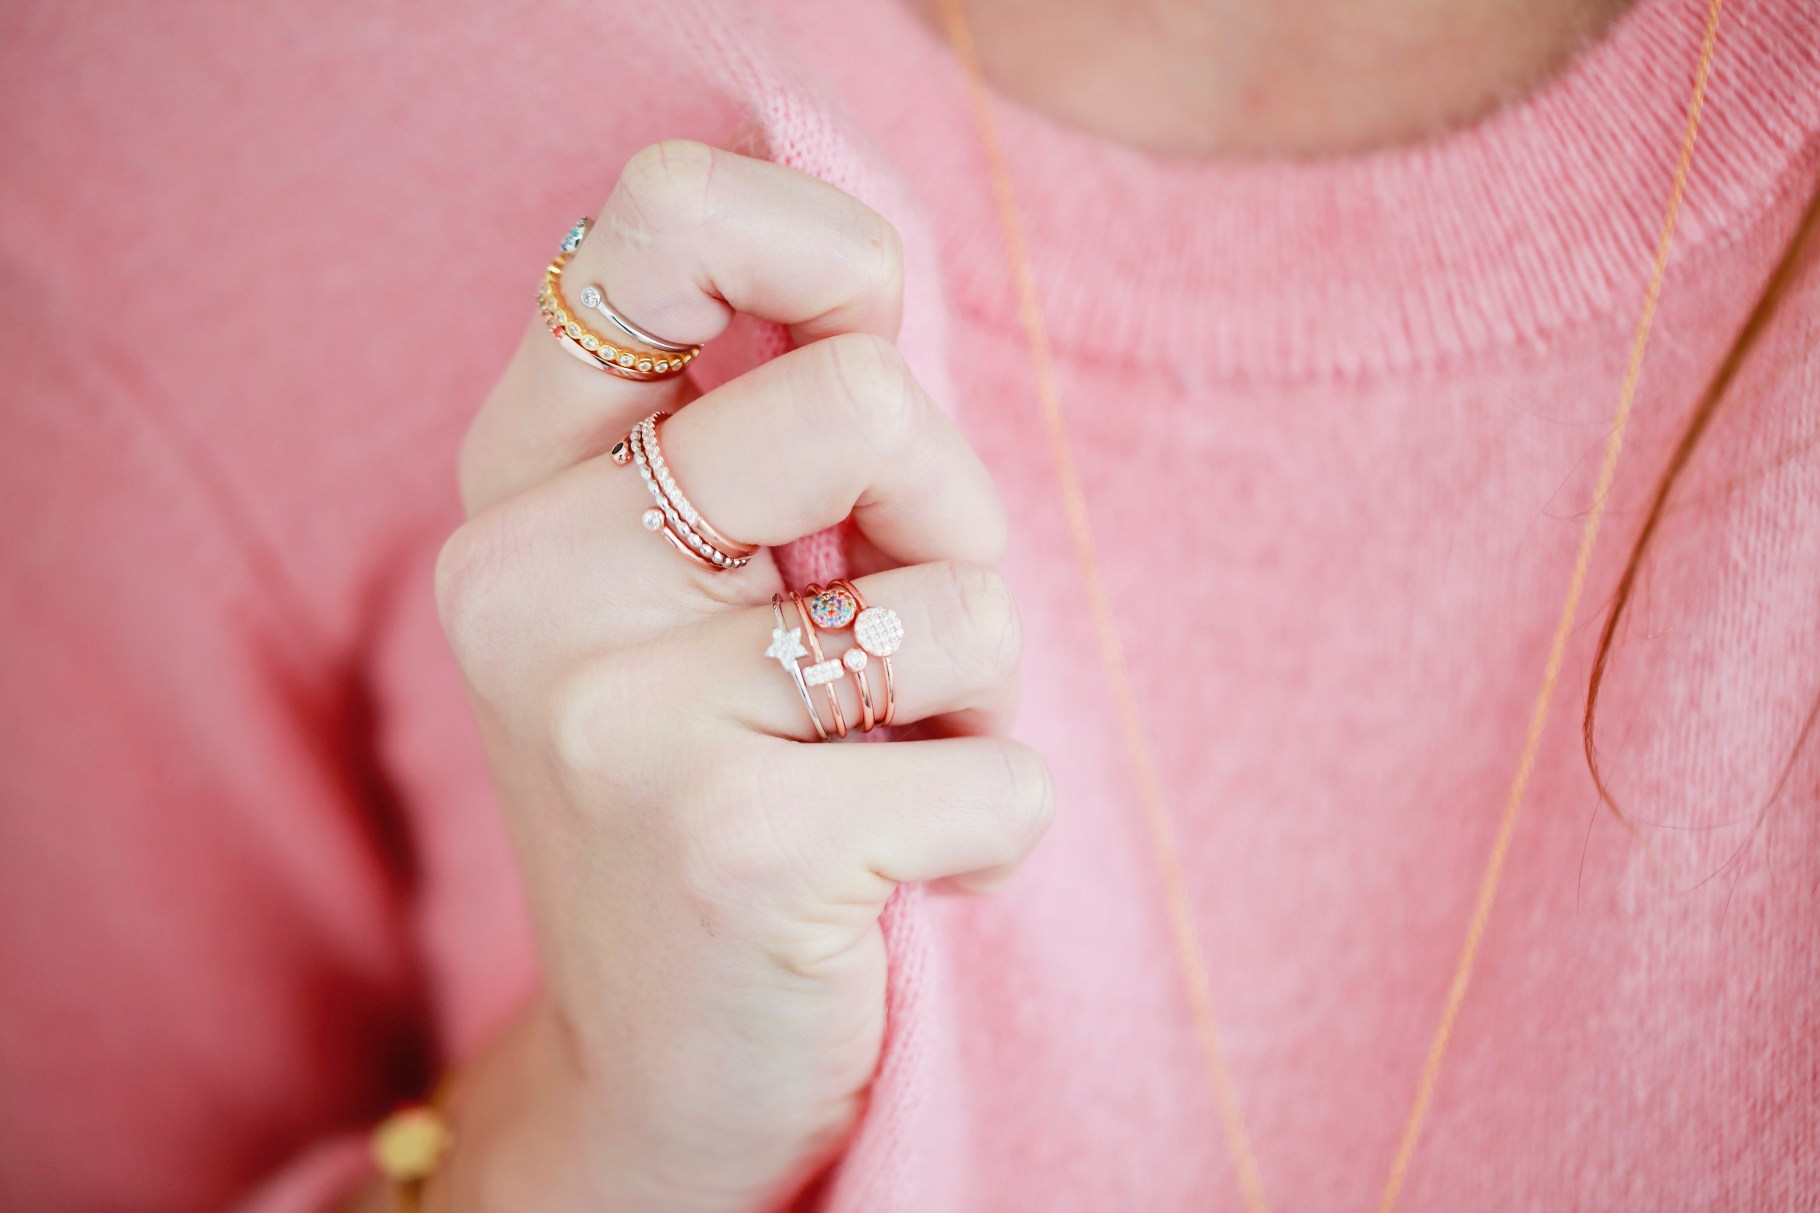 The best place to shop dainty jewelry